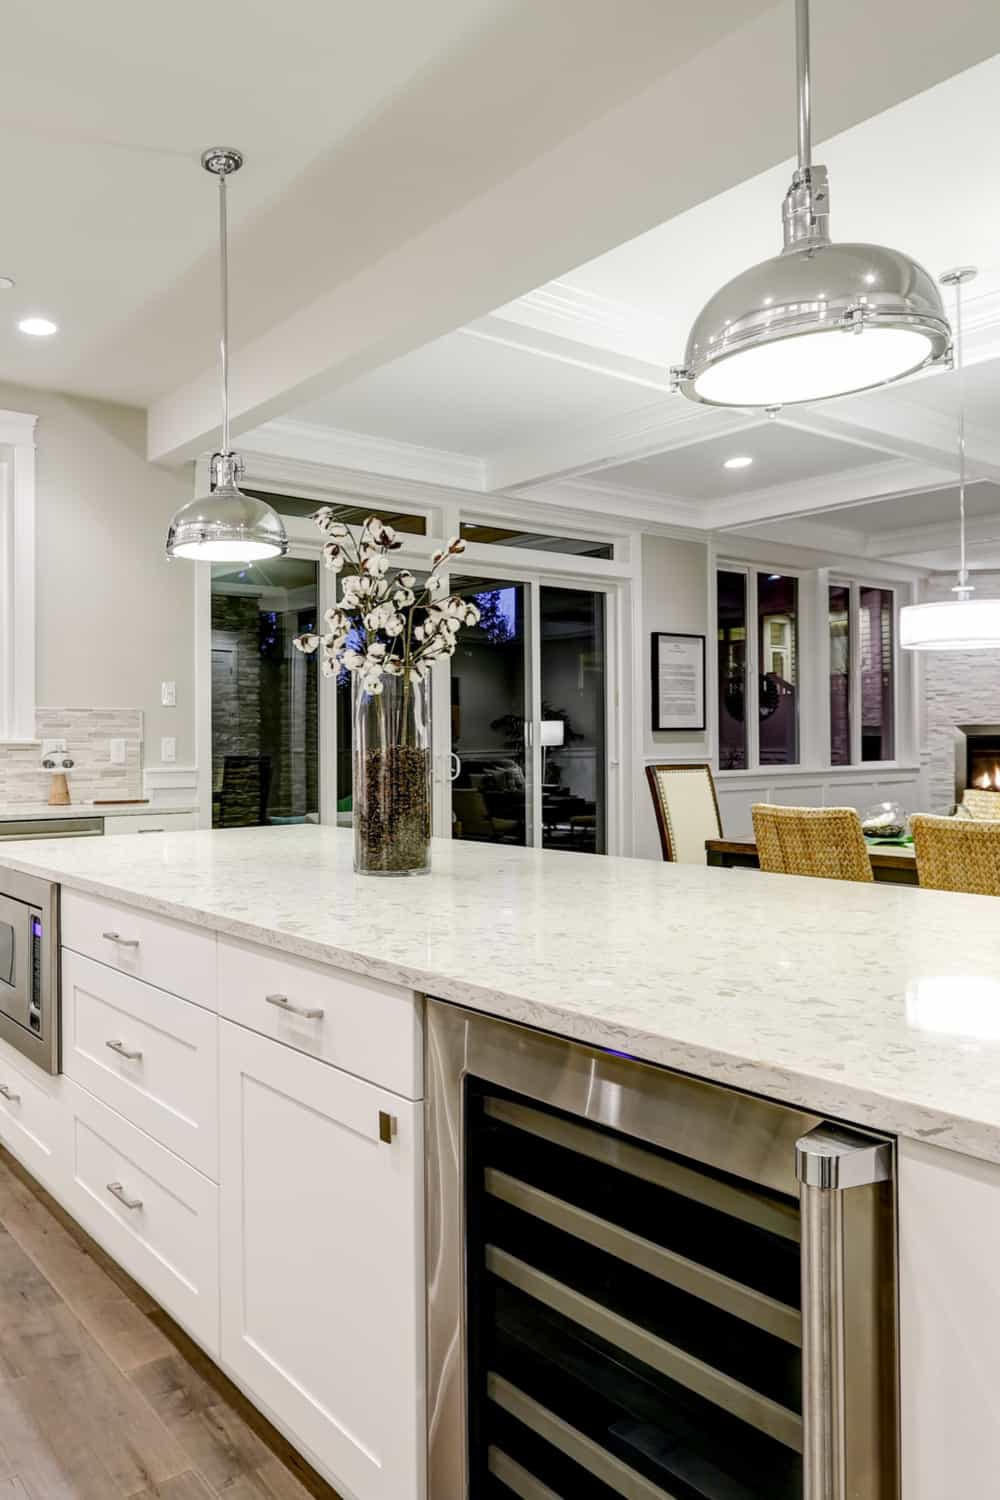 17 Homemade Marble Countertop Plans You Can Diy Easily